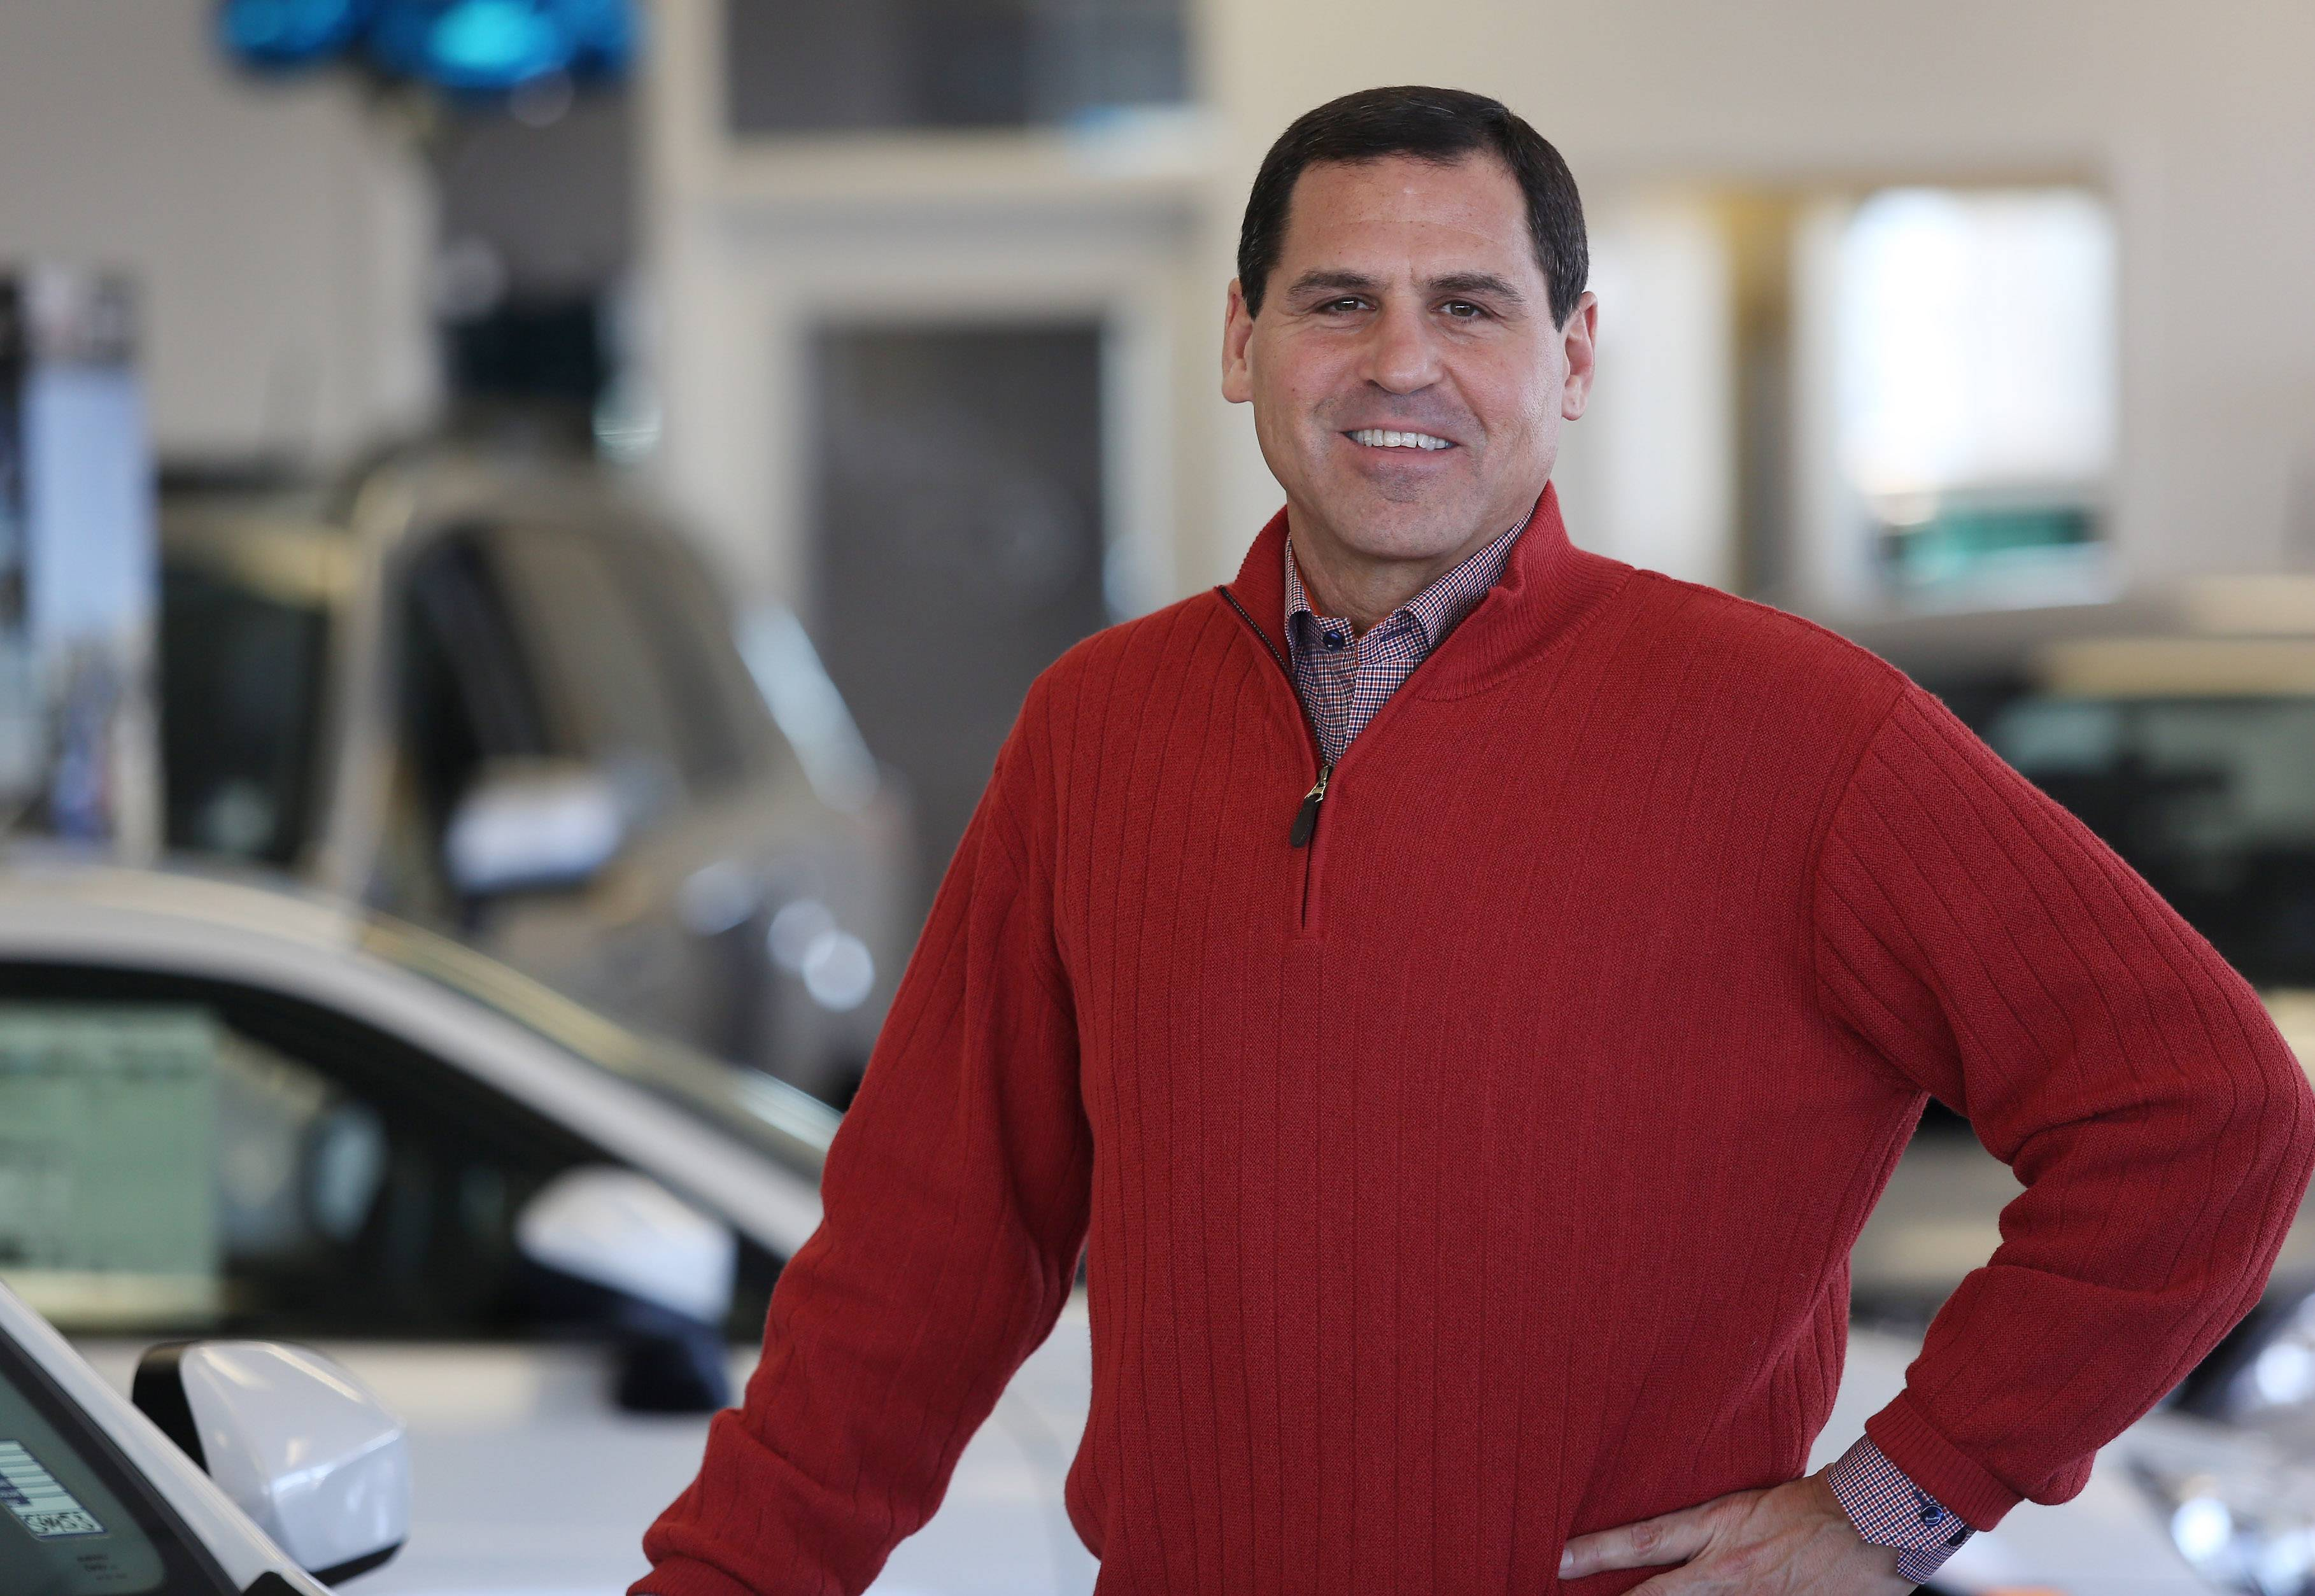 Mark Muller is the newest member of the Muller family to enter the auto business. After a lengthy career as a trader, he is now managing partner of Muller Auto Group, a Subaru/Volkswagen/Nissan dealership in Highland Park.